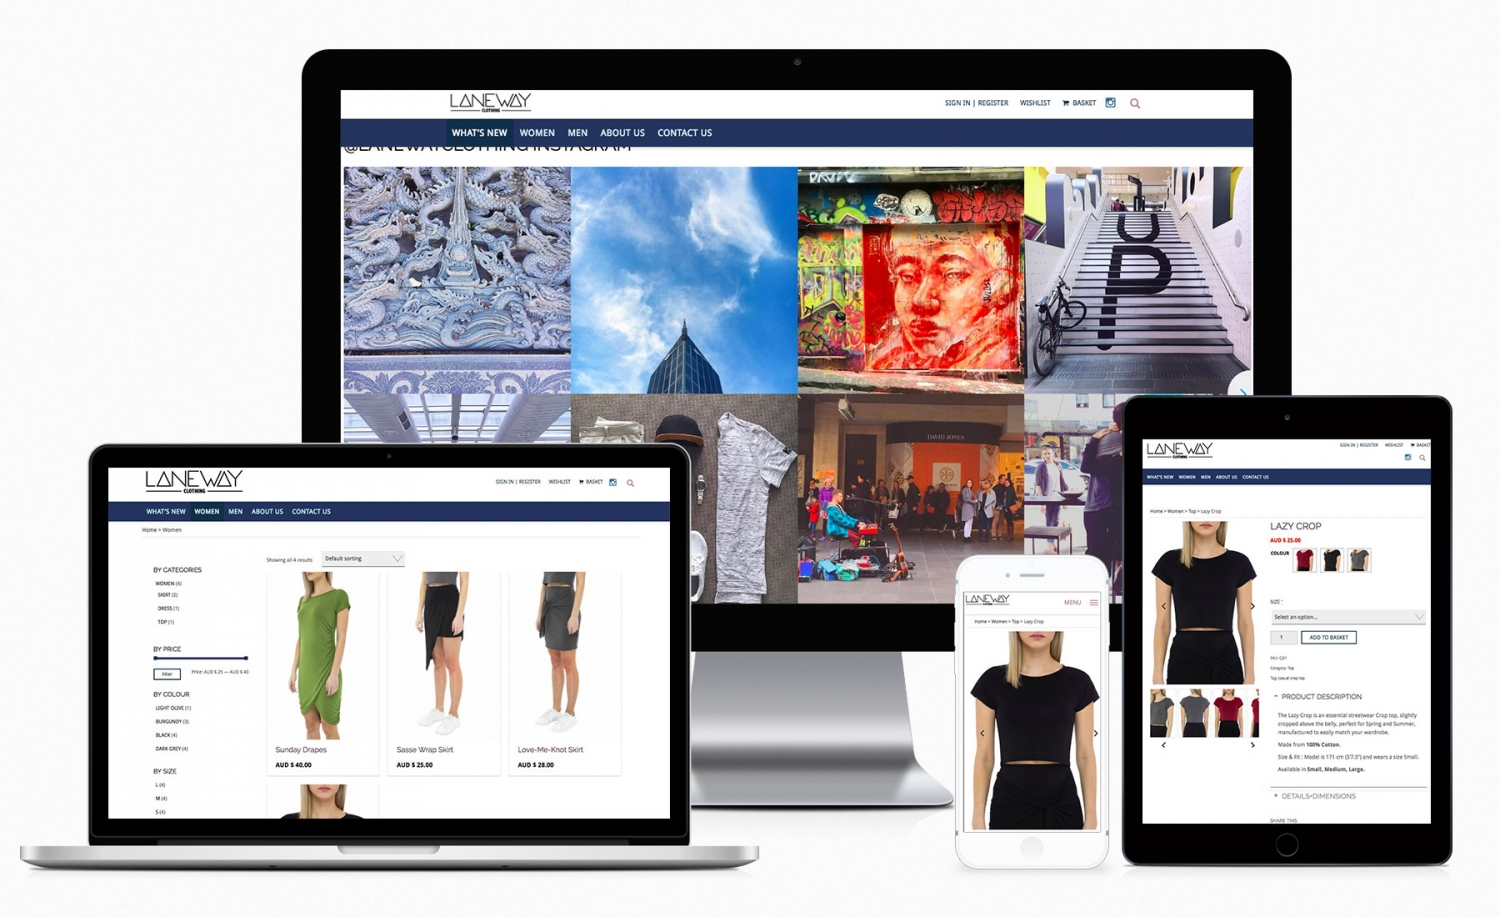 Laneway Clothing Company e-commerce website design and setup